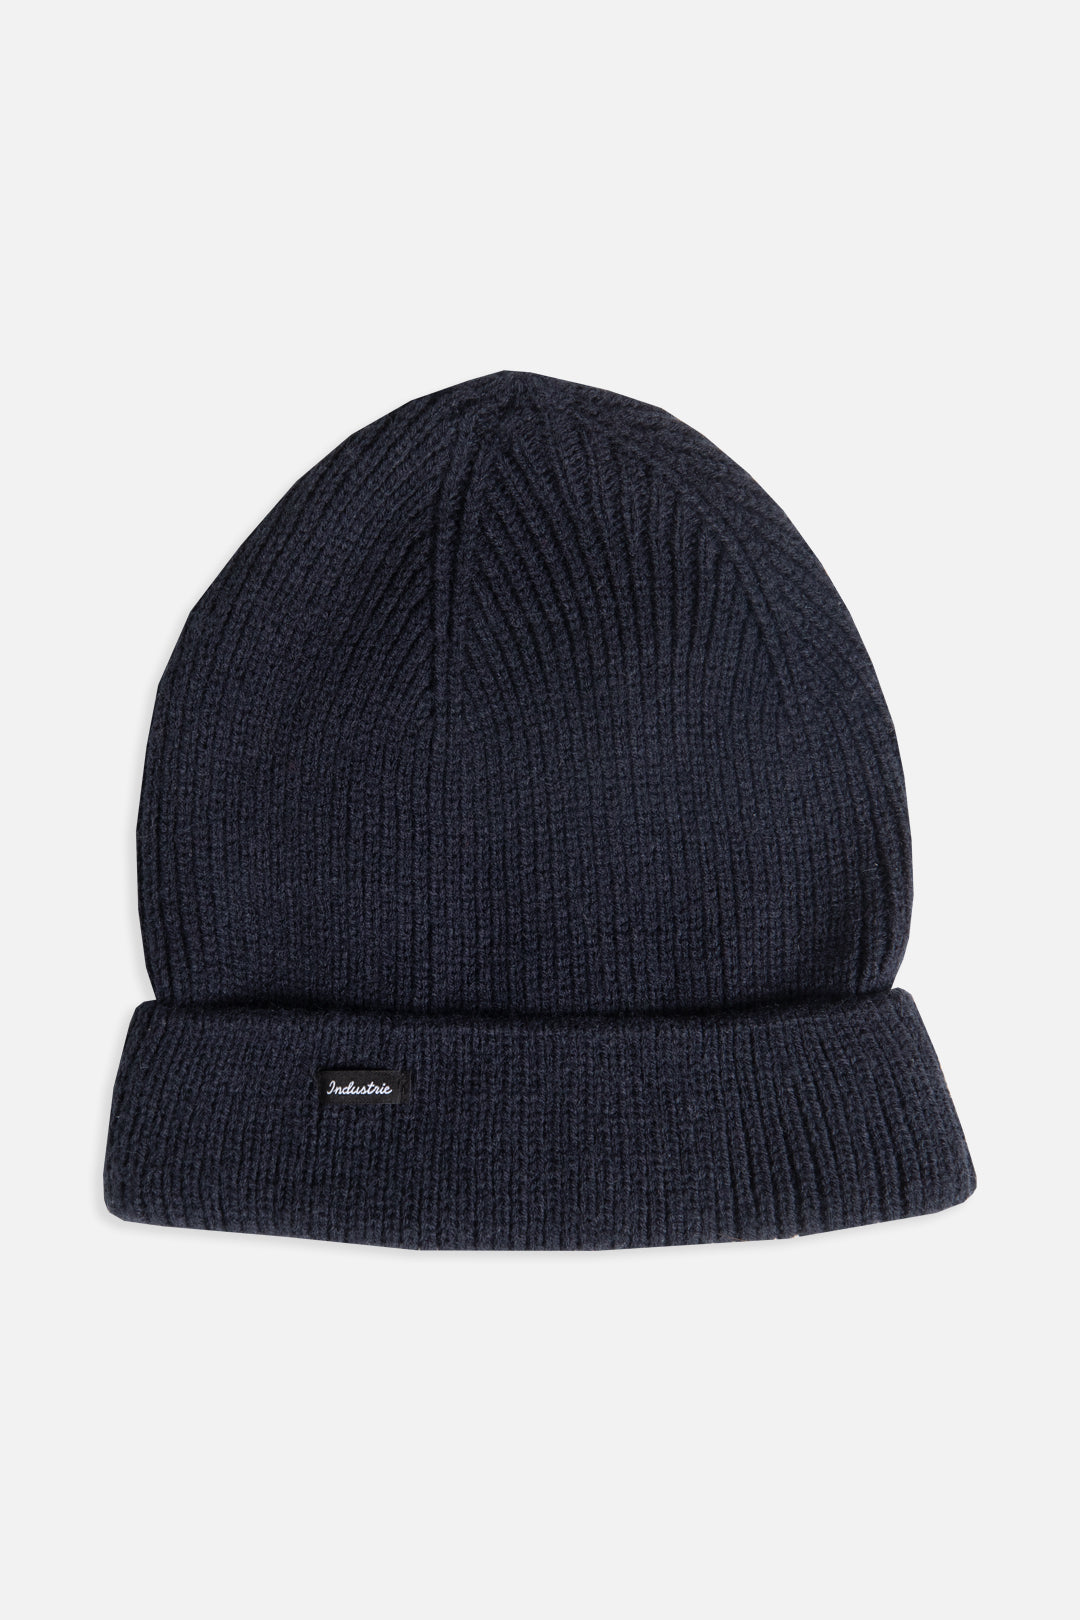 The Alaska Beanie - Navy 20